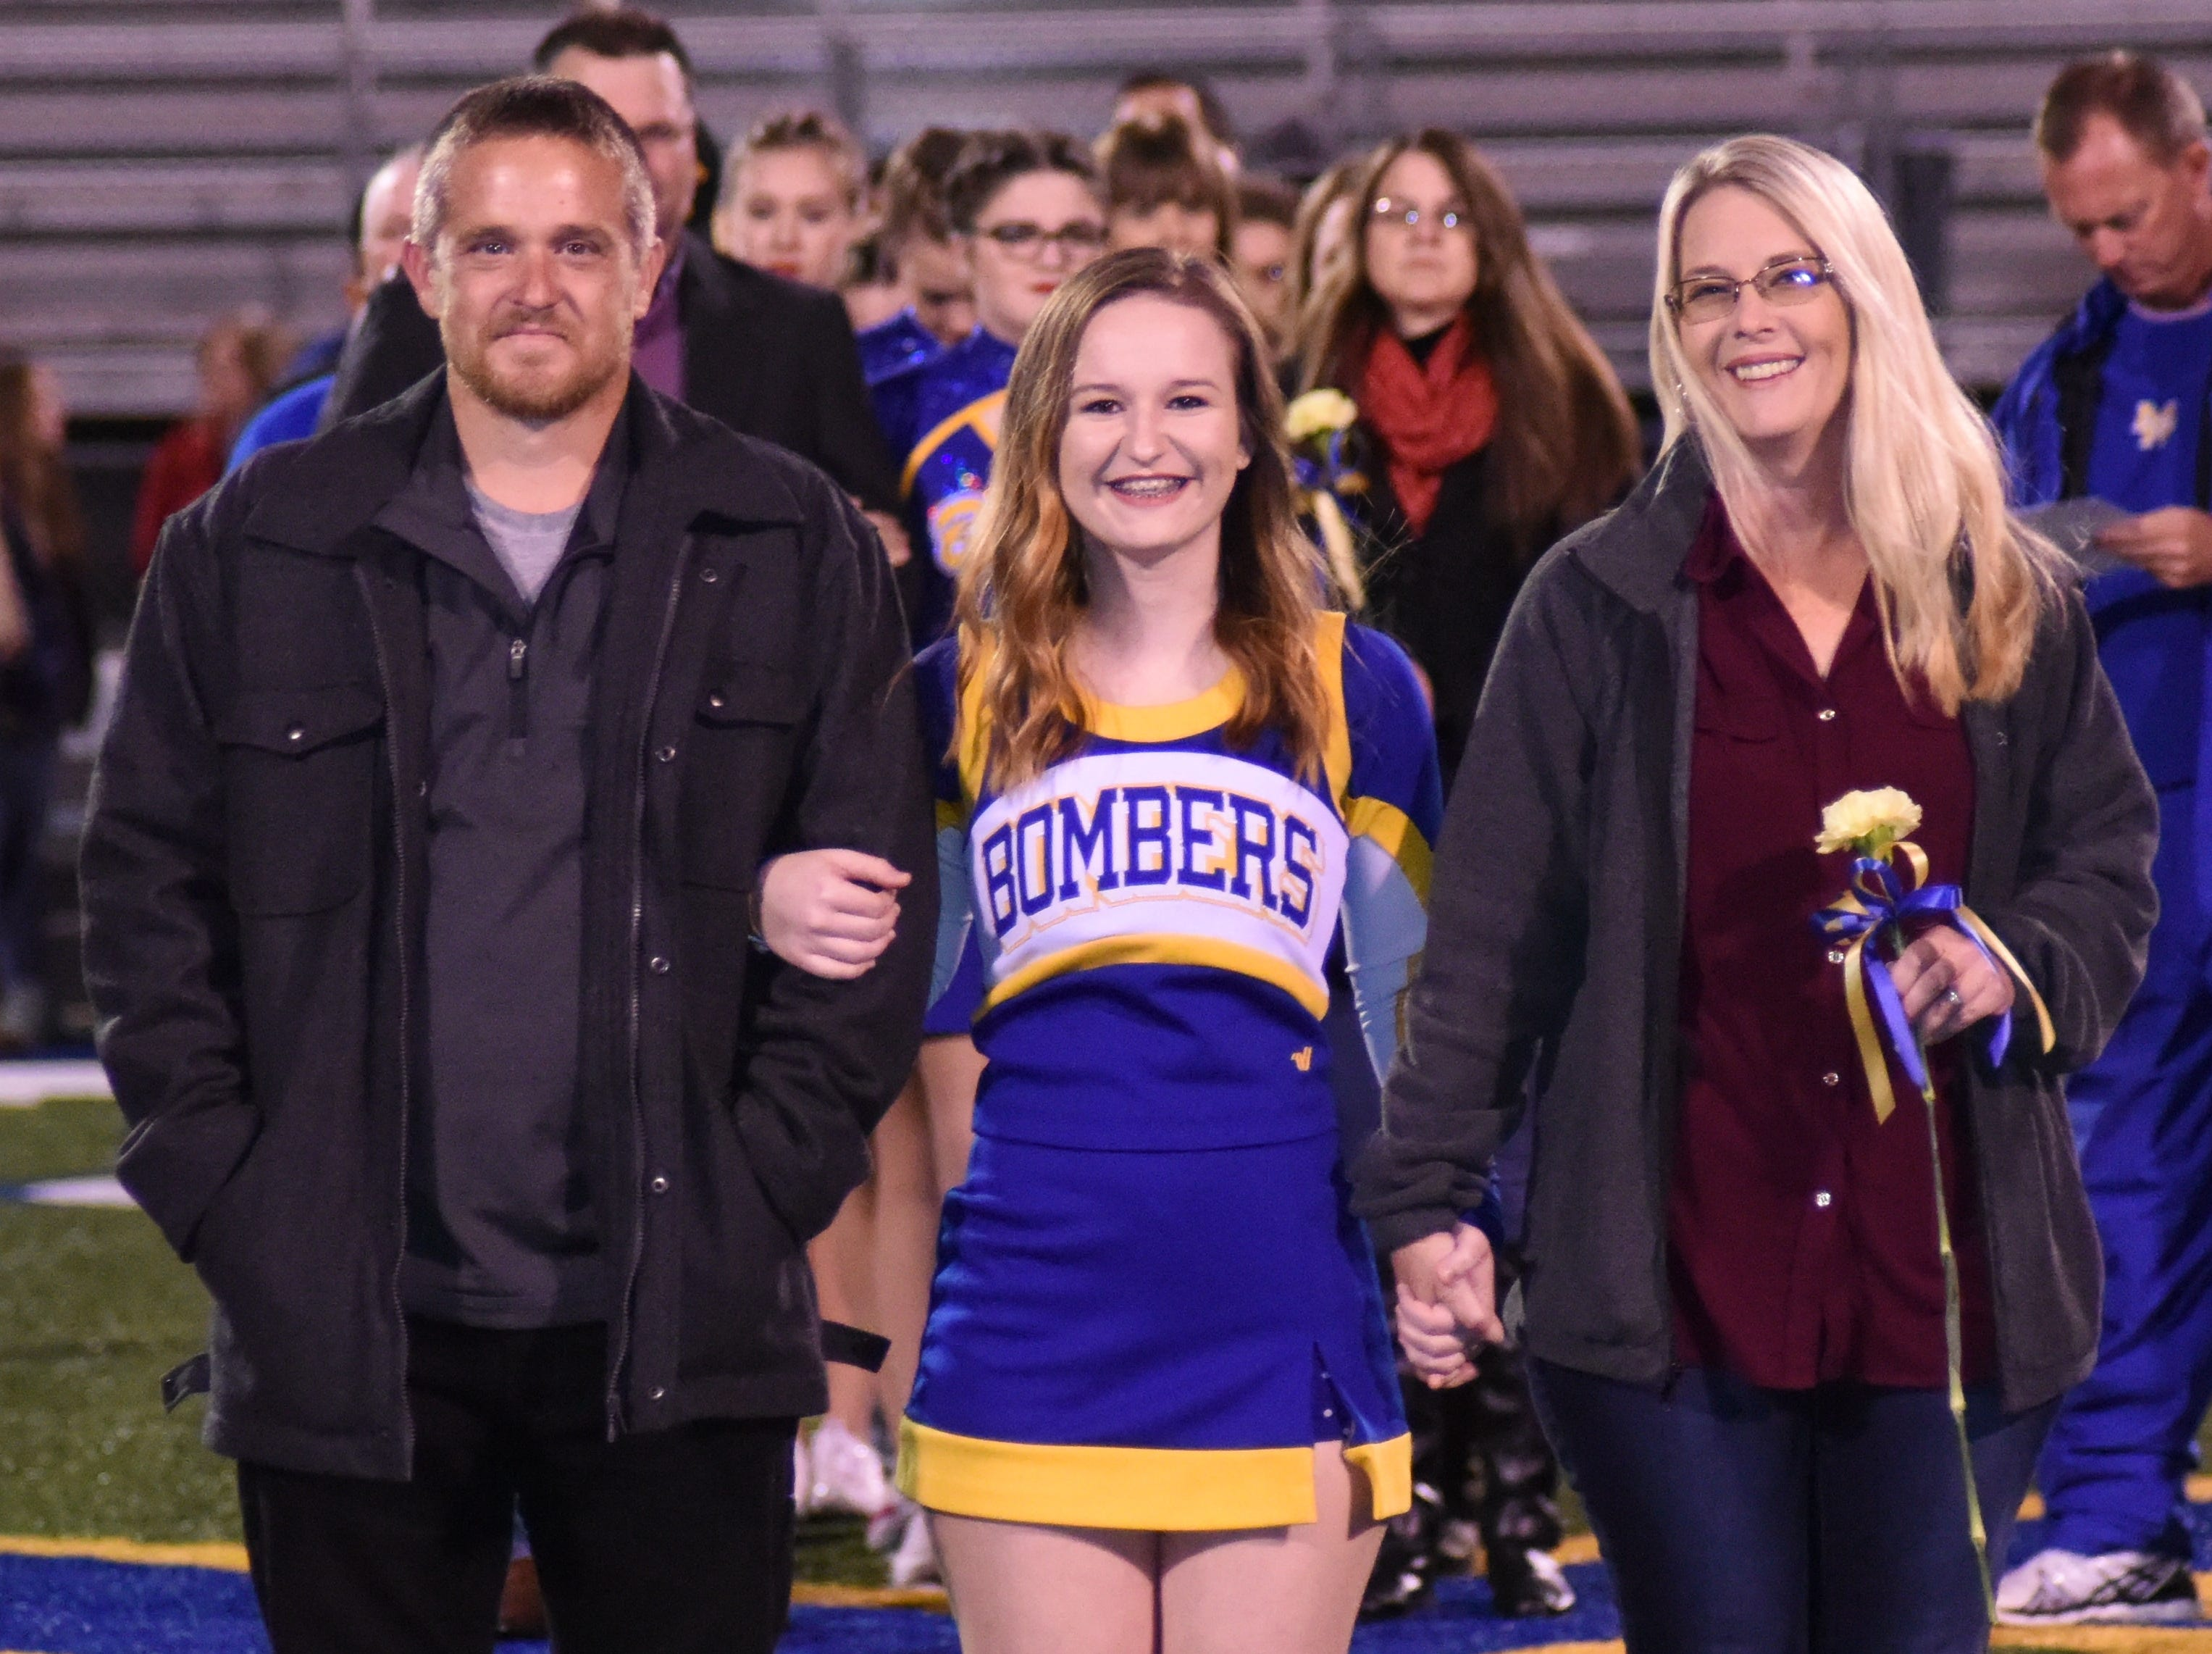 Seharra Spurlock and her parents, Darci and Jared Domerese.